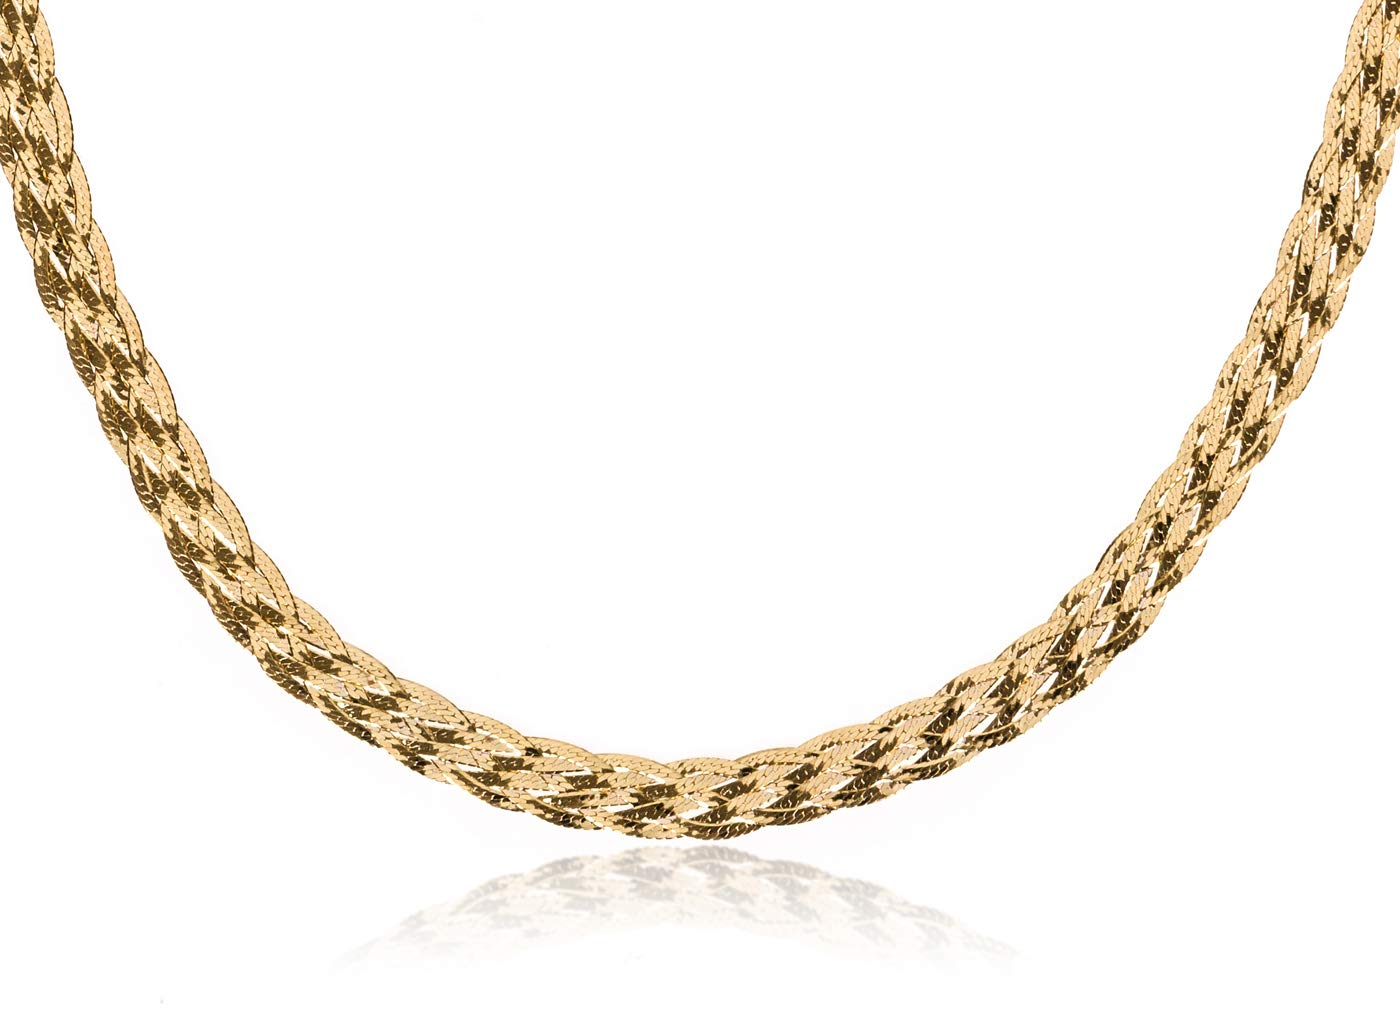 SilverLuxe 925 Sterling Silver 6 Row Braided Herringbone Chain Italian Made 18'' Gold Plated